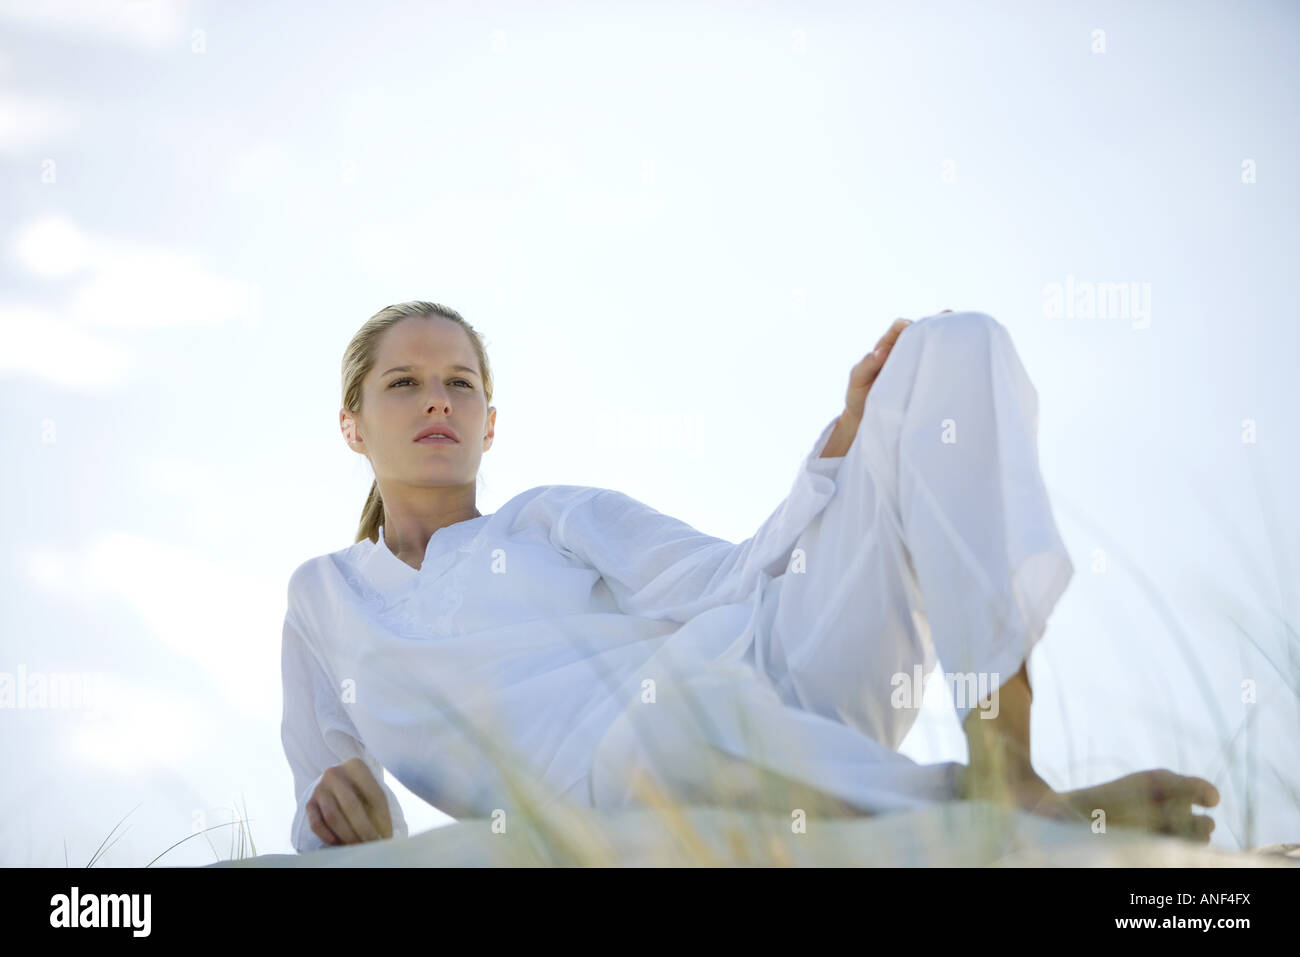 Woman lounging on dune, low angle view - Stock Image